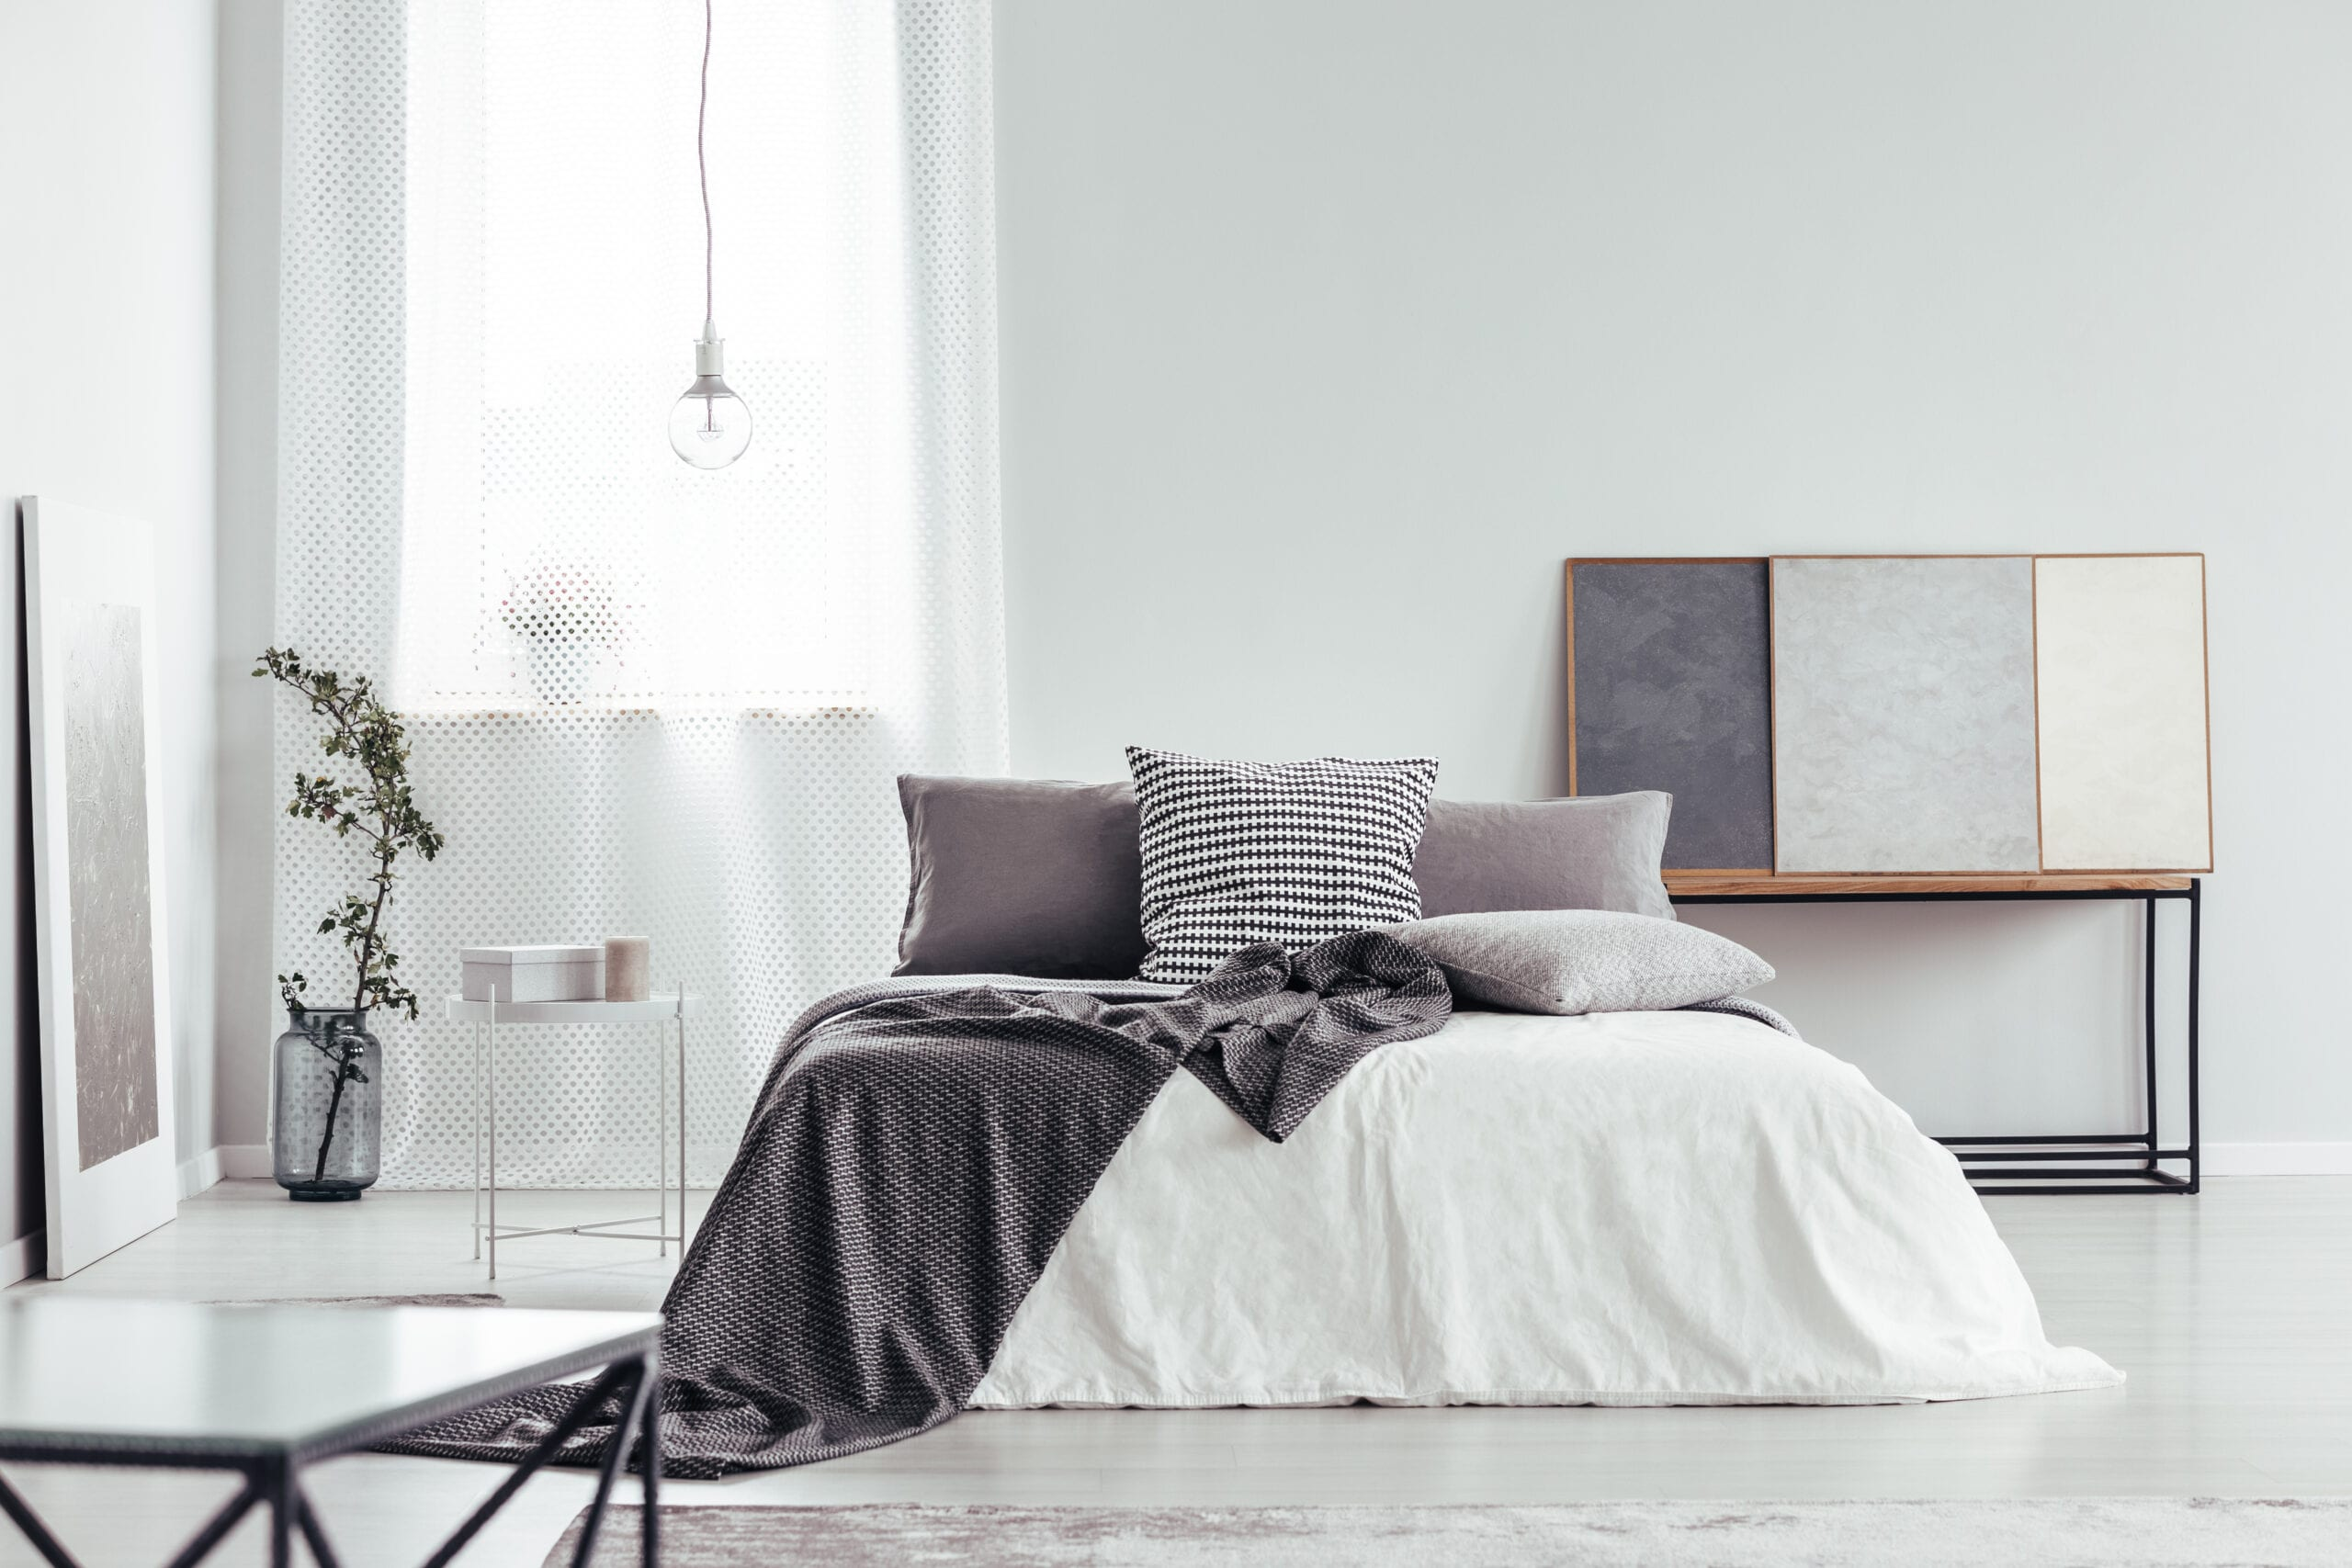 Bedroom Textiles in Shades of Gray